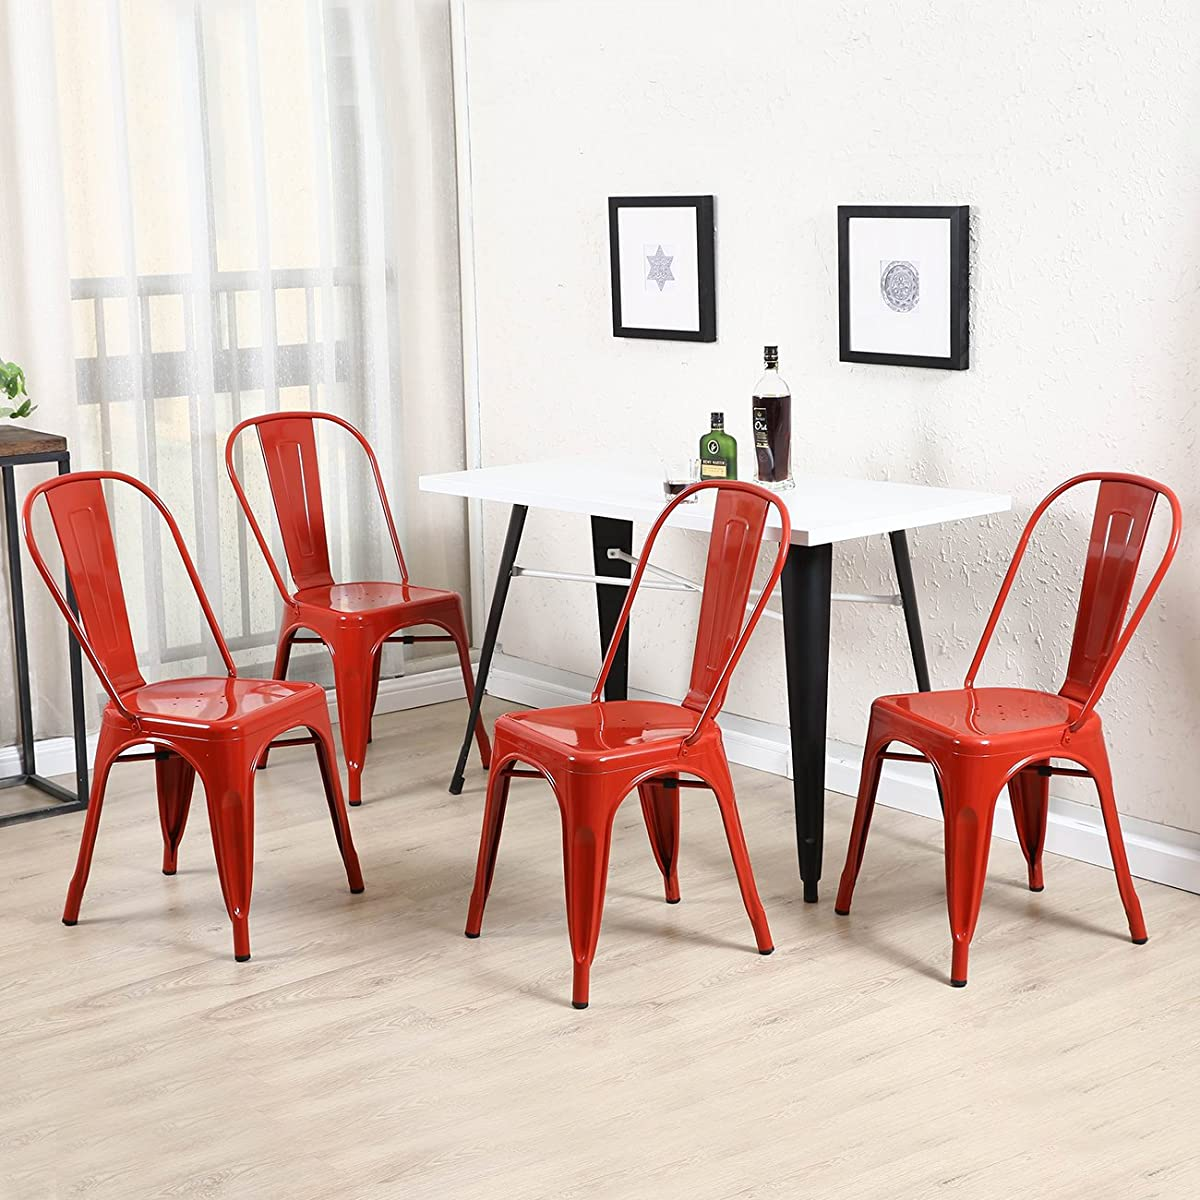 Belleze Set of (4) Vintage Style Dining Chairs Steel High Back Side Chairs Stool (Red)